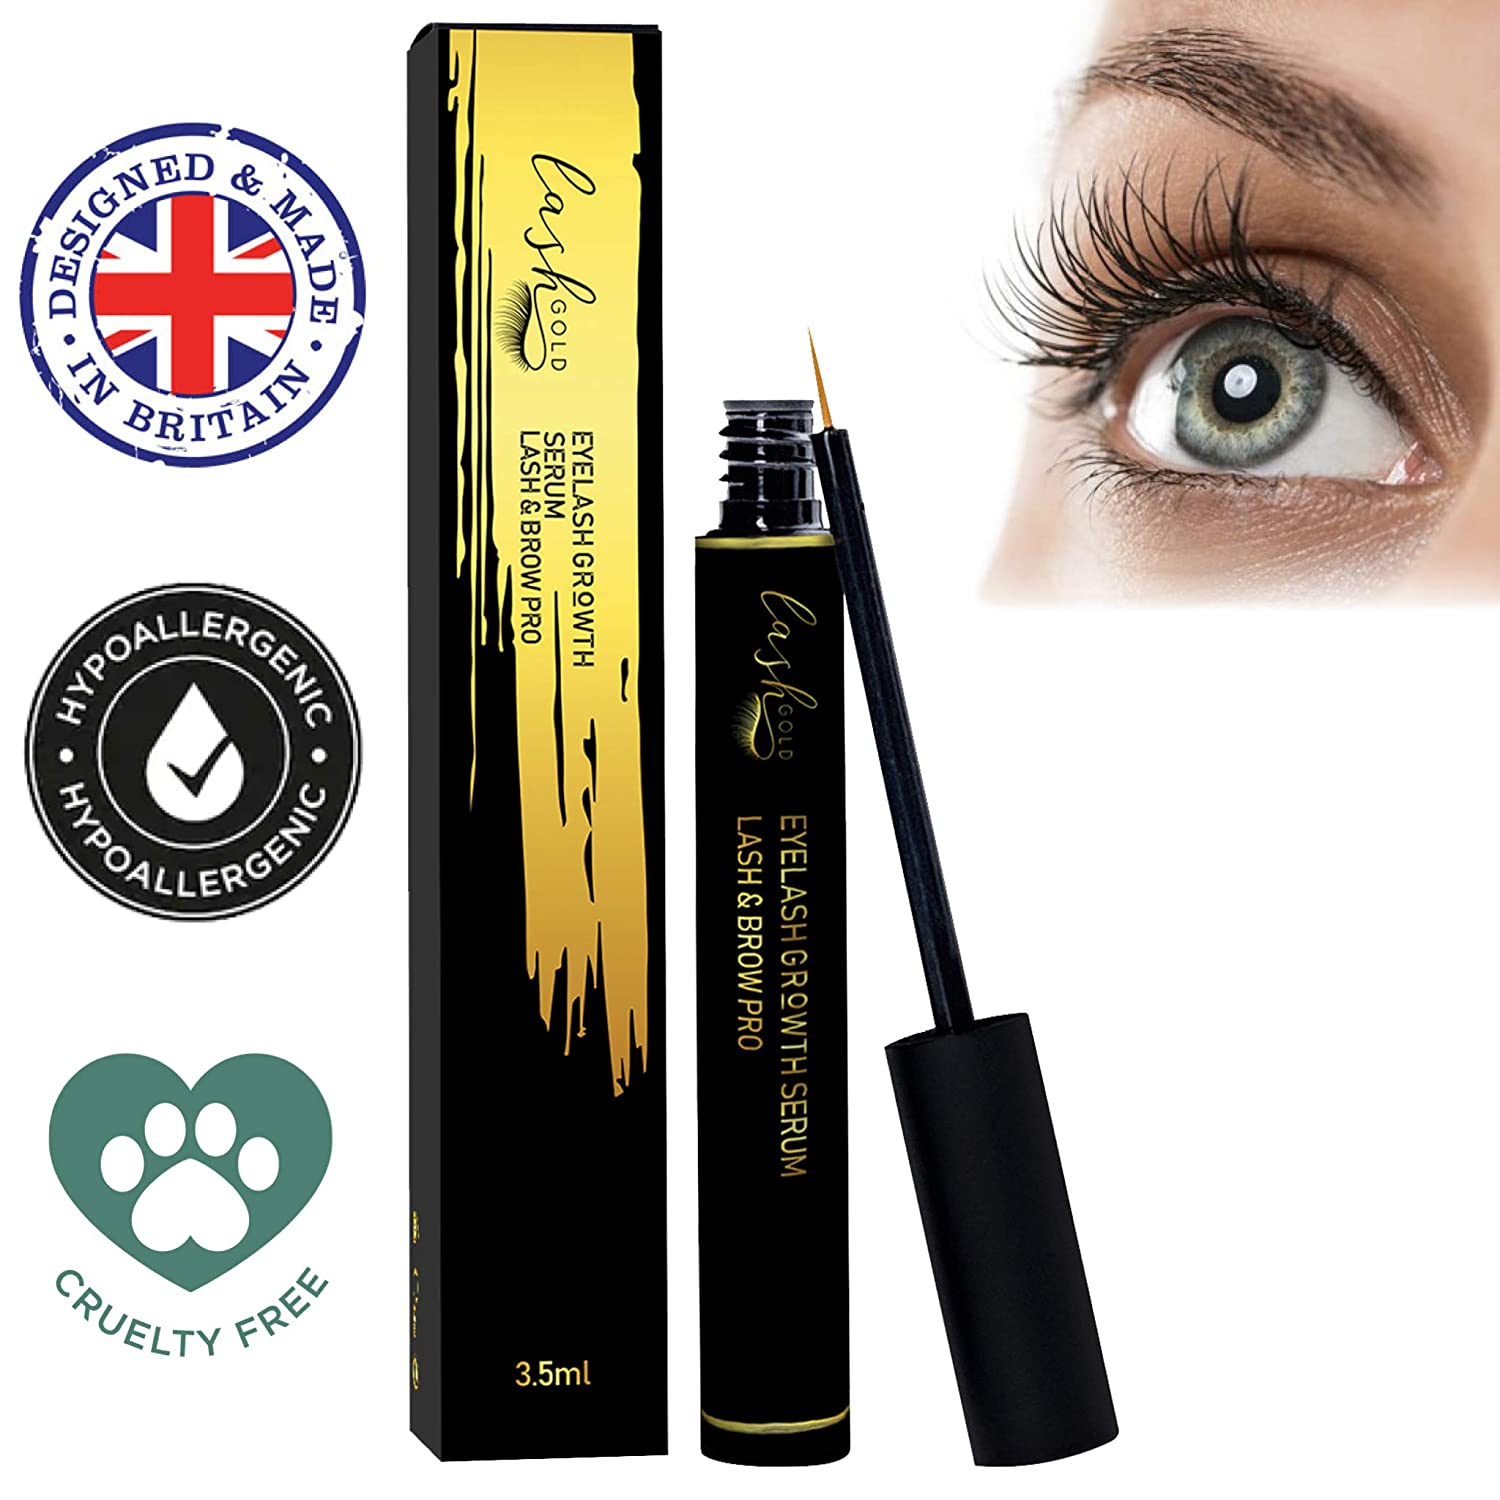 Beauty Eyelash Growth Serum Lash & Brow Pro Conditioner - Lash Gold Eyelash/Eyebrow Advanced Enhancer and Booster 3.5ml – Best Seller – Hypoallergenic Natural Formula With Vitamins & Minerals